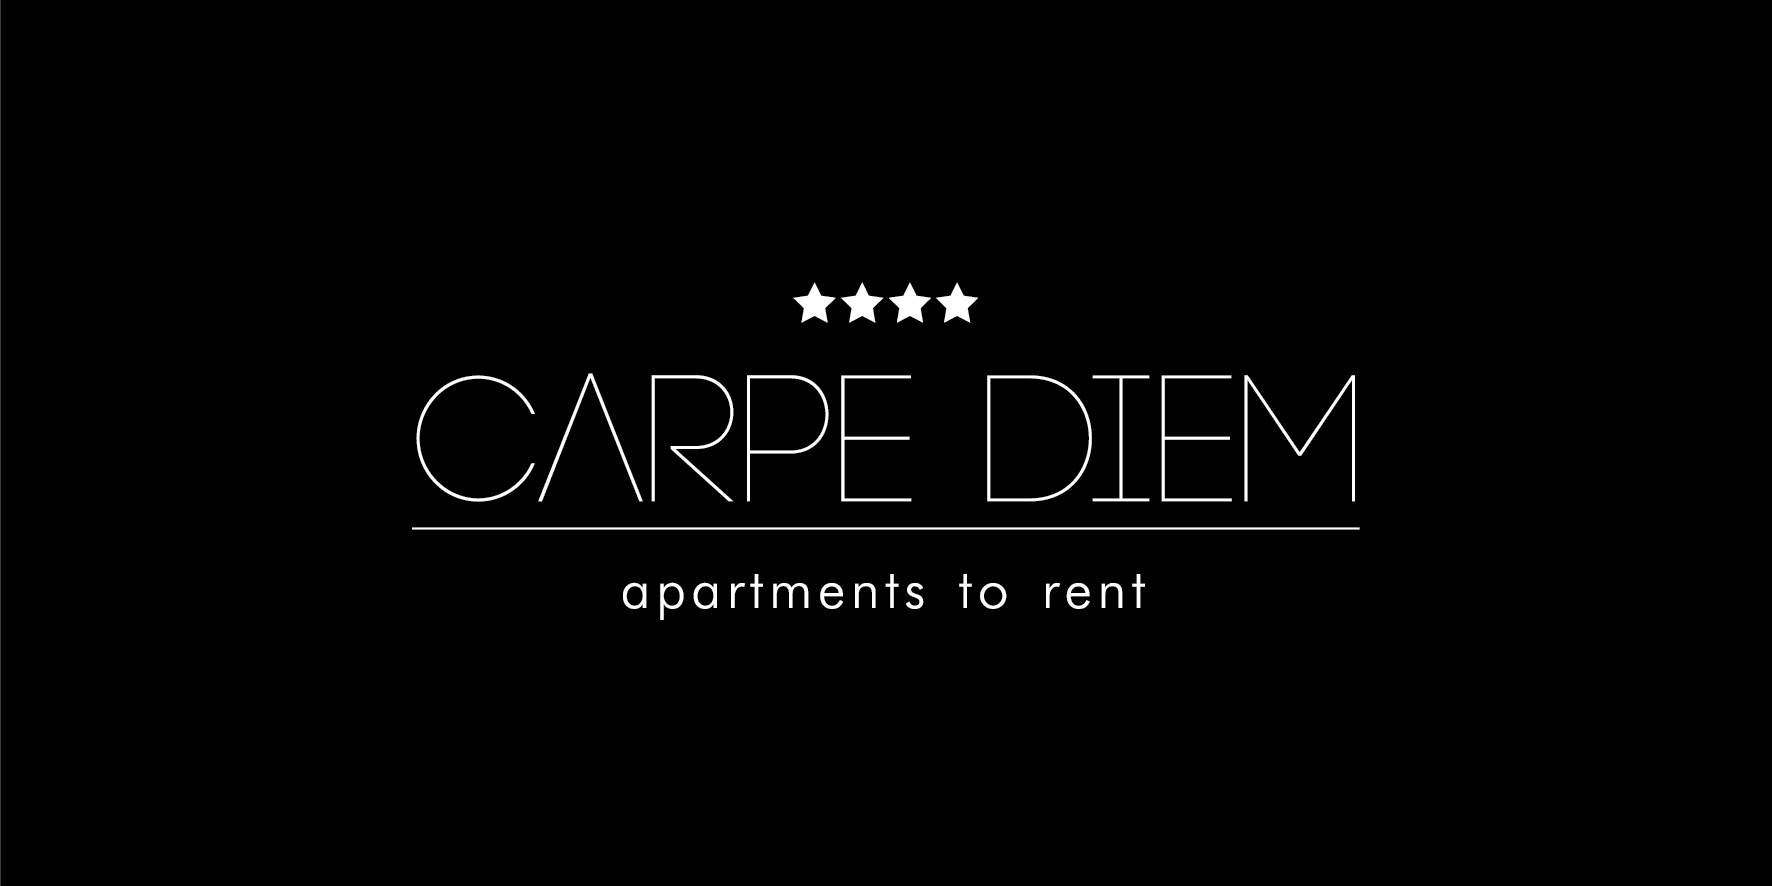 Hotel Management Software Clients - Carpe Diem Apartments